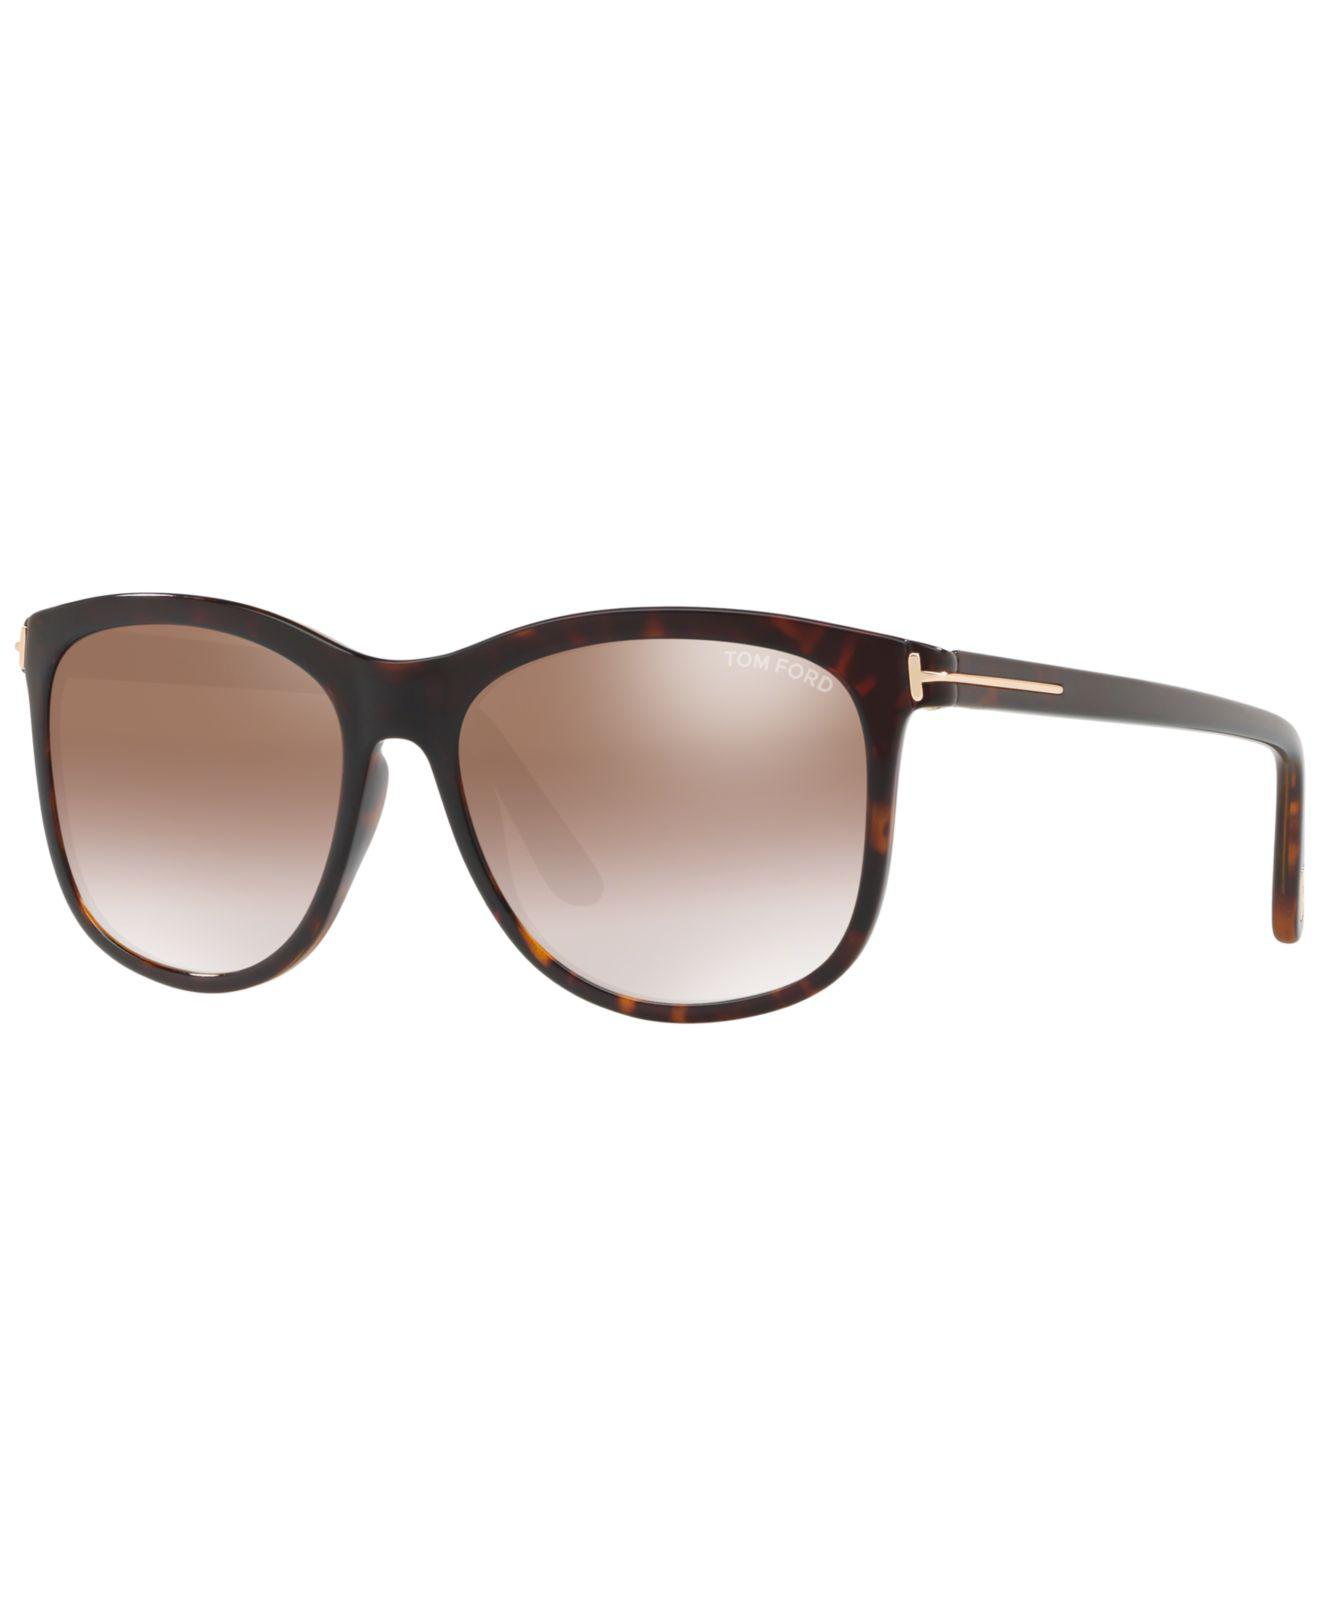 59ad452be4 Lyst - Tom Ford Sunglasses